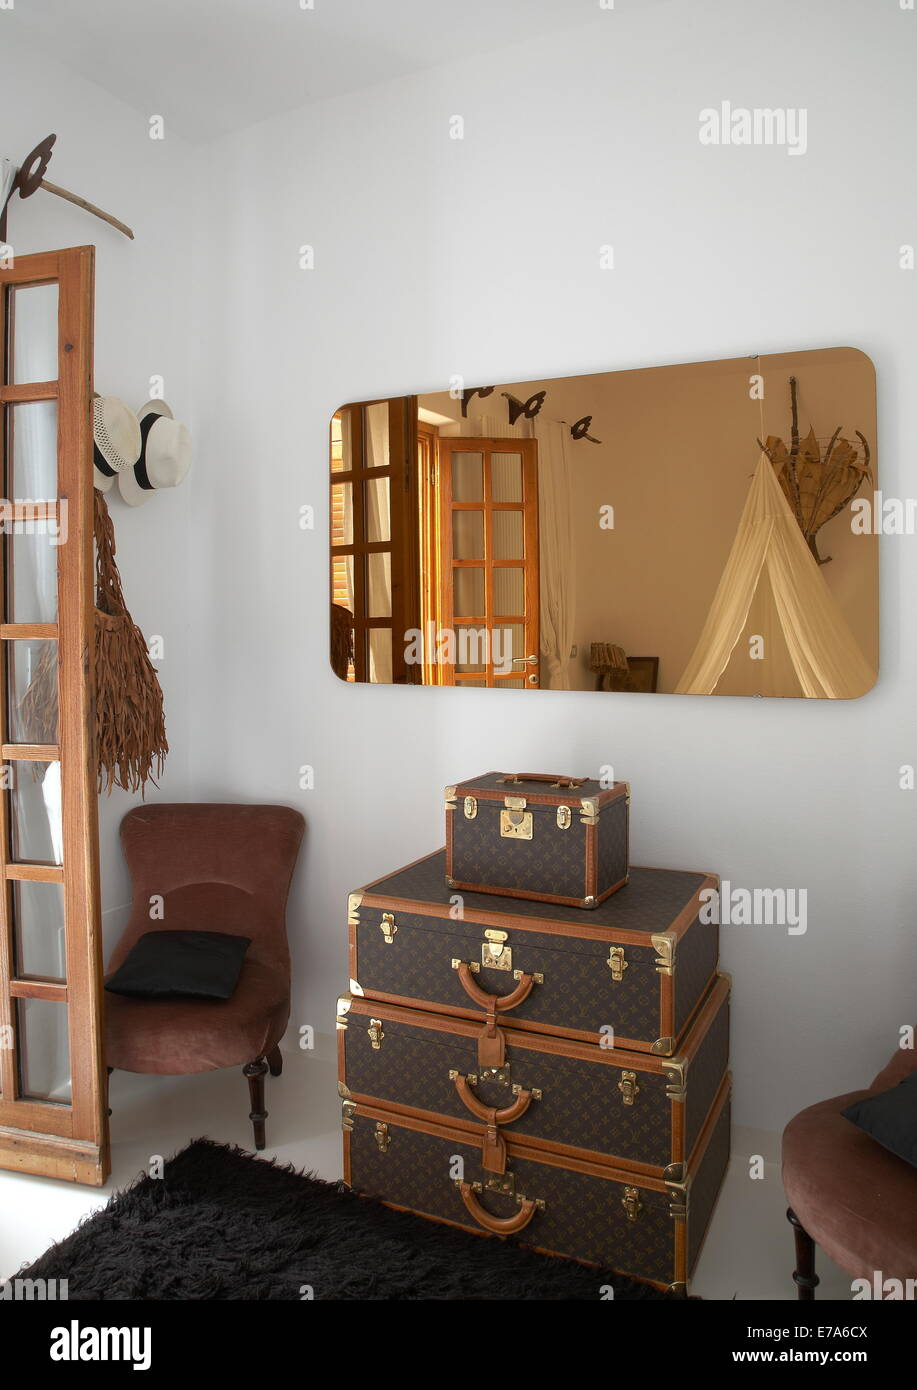 b111d15aeeeb Home interior with two chairs and four Louis Vuitton trunks on the floor